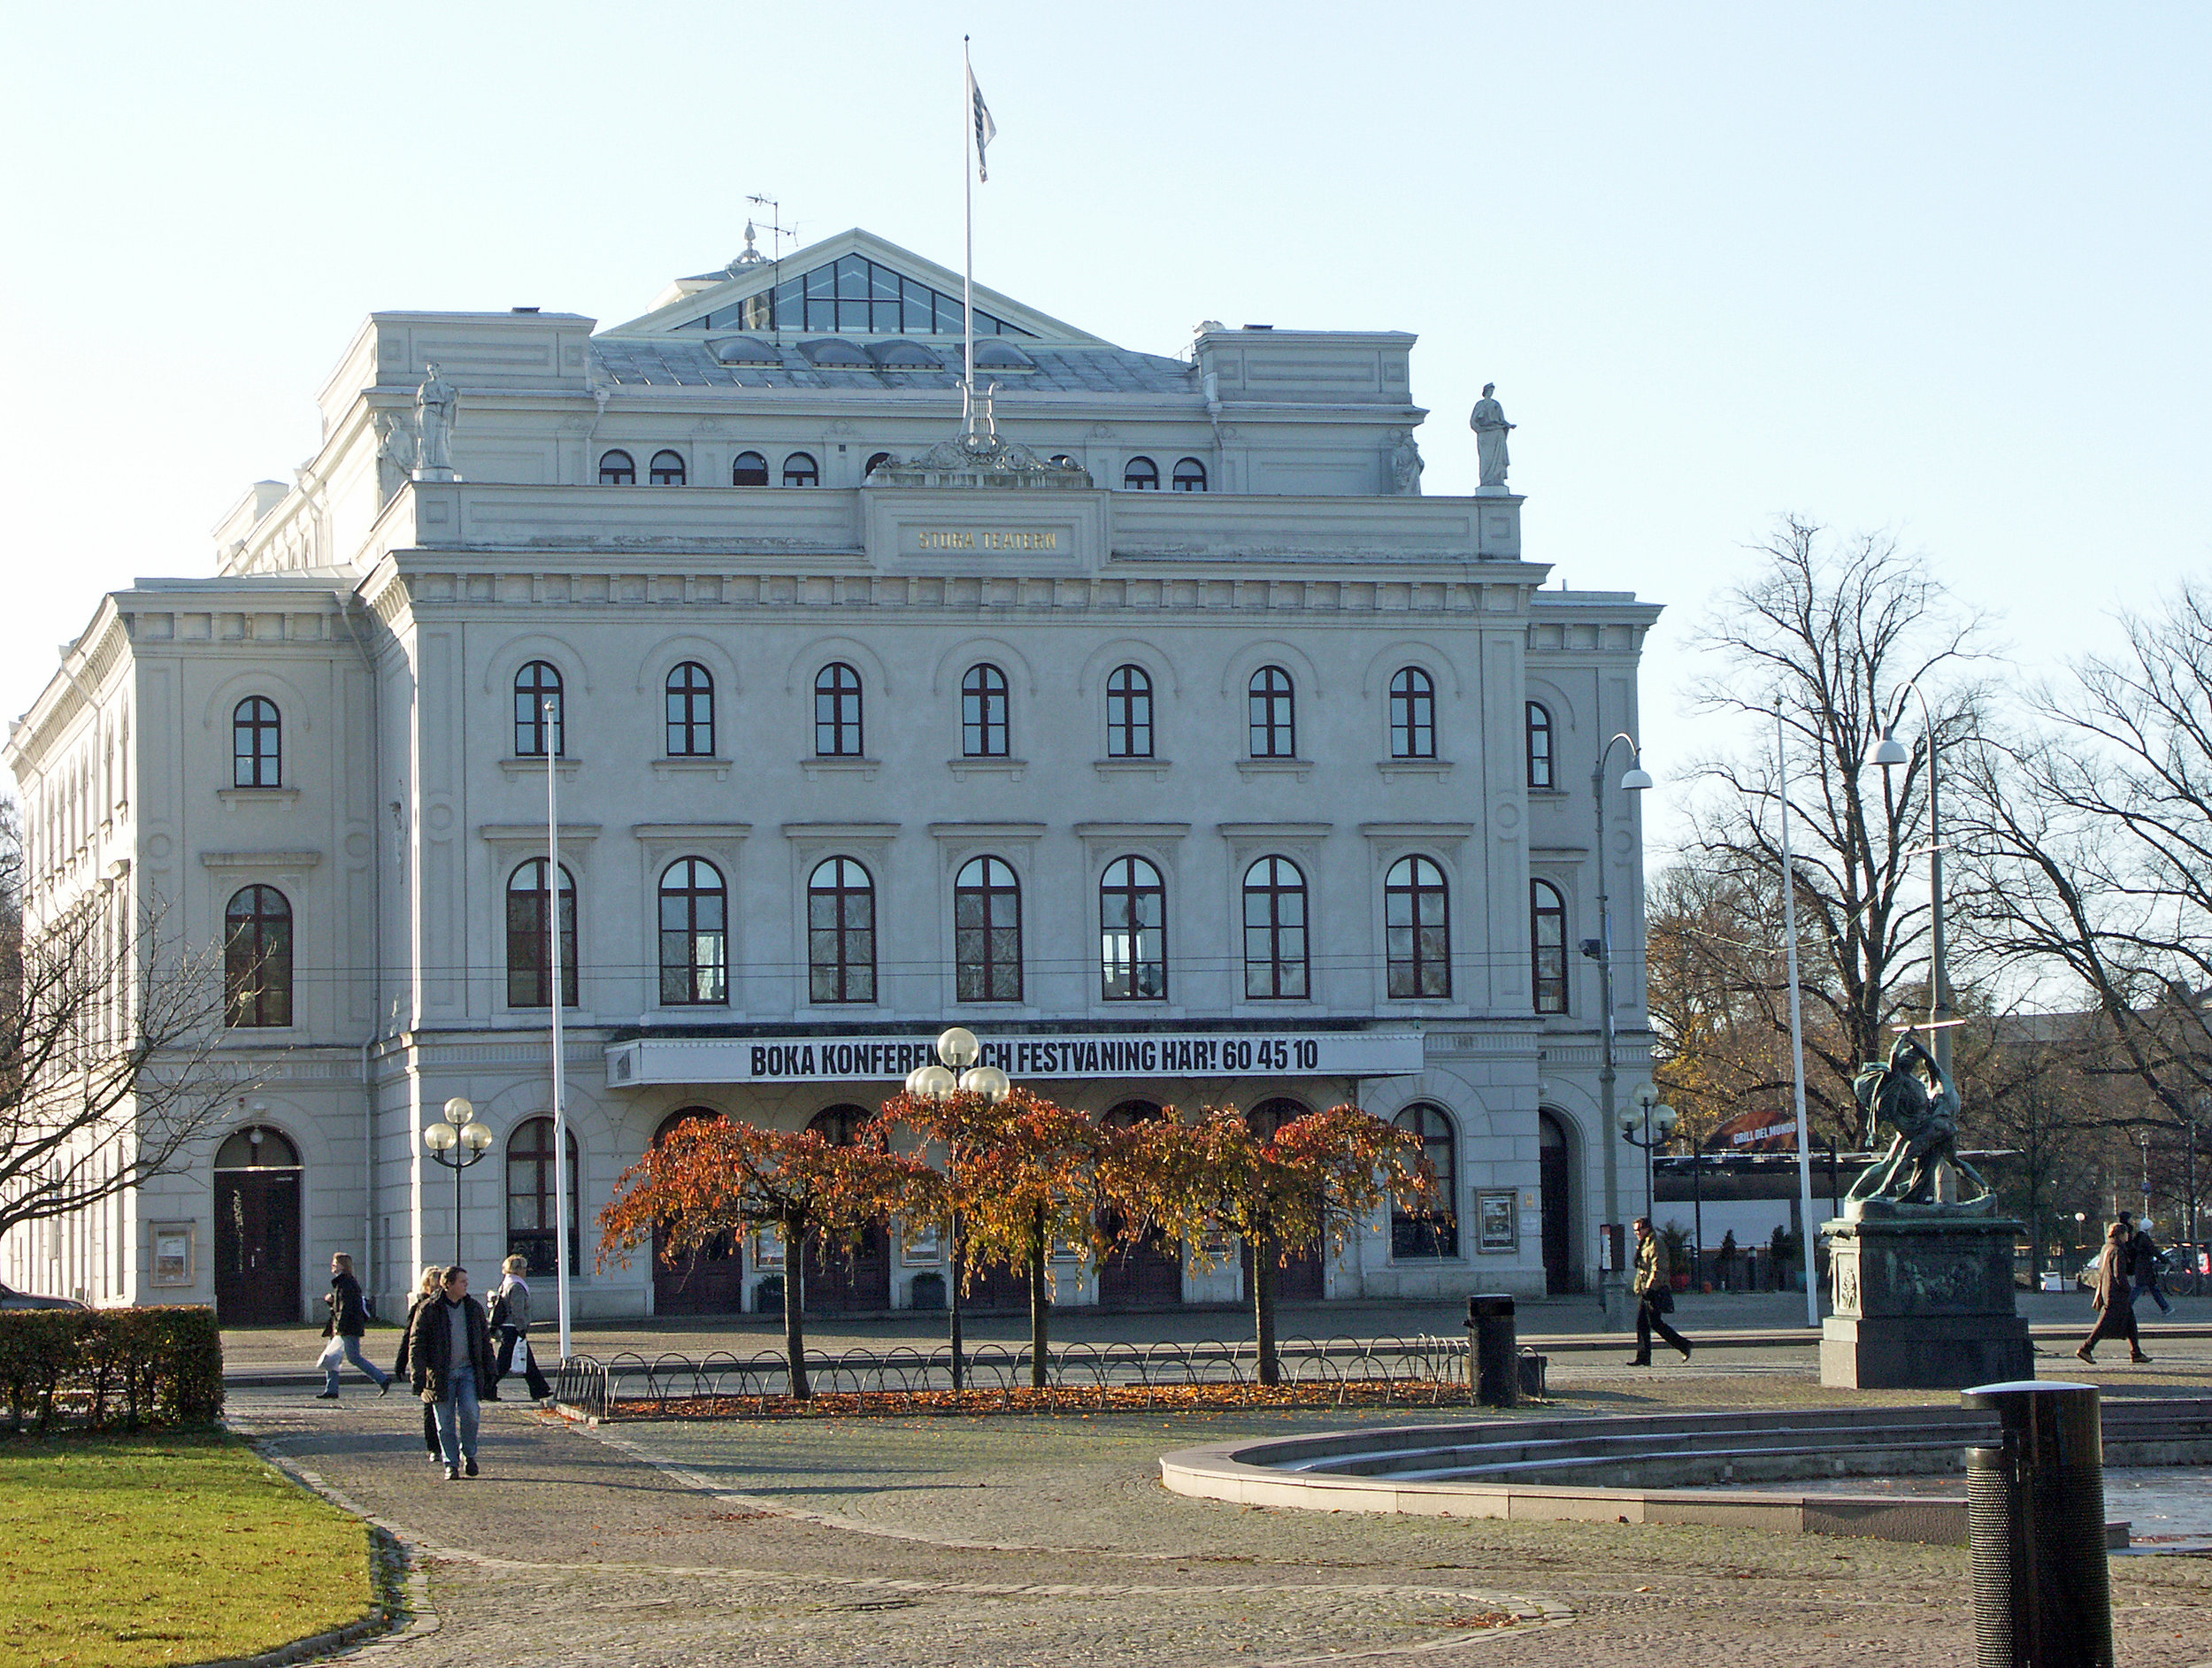 Stora teatern in Gothenburg